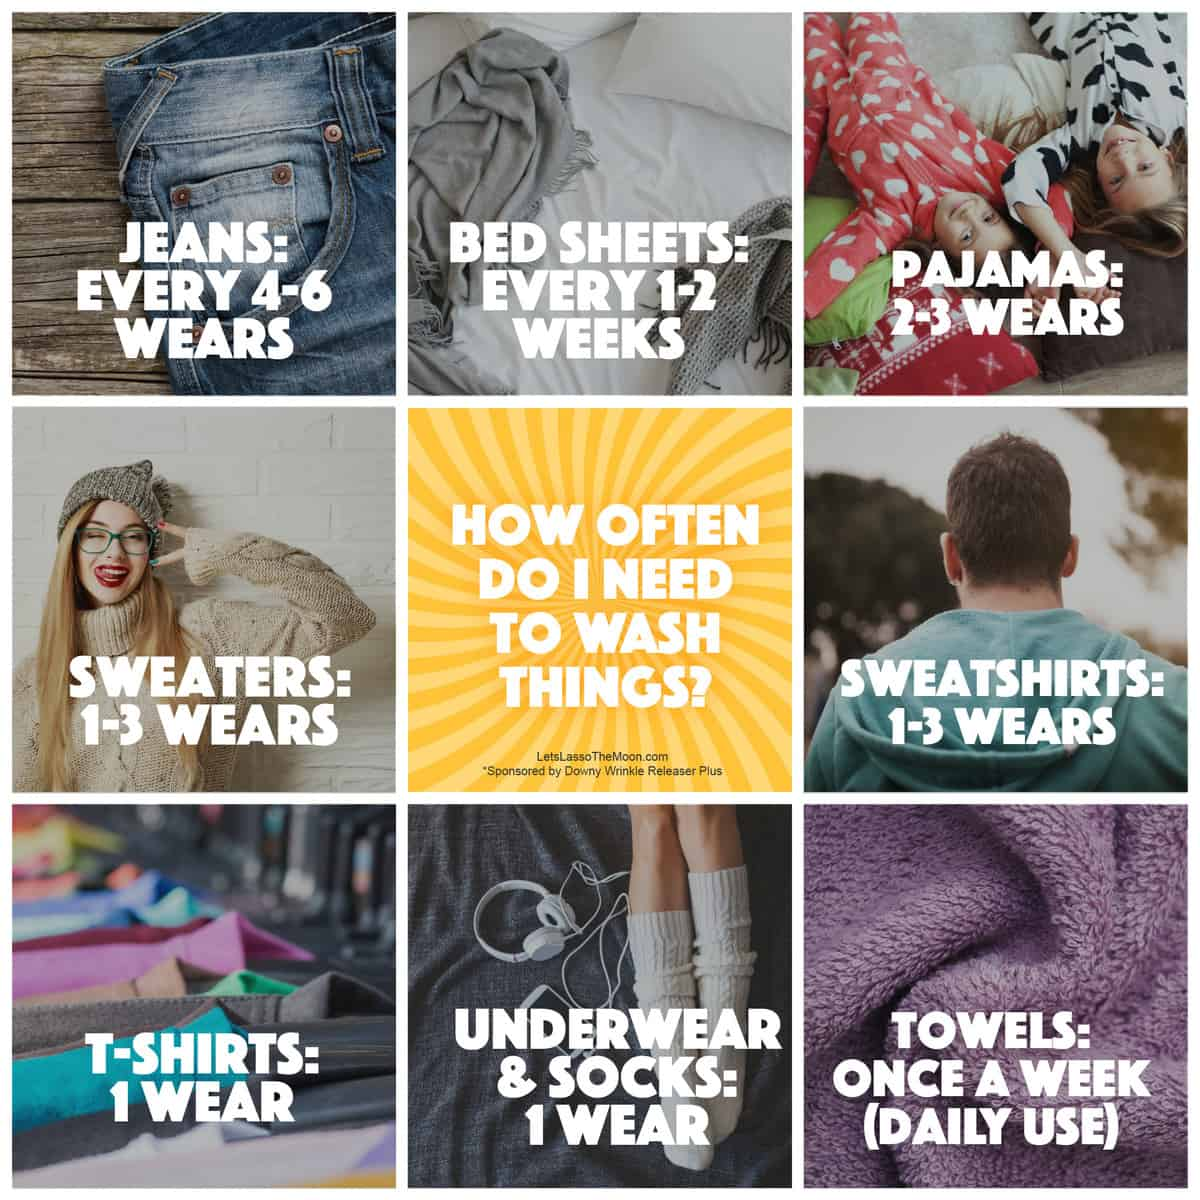 How often do I need to wash things? This is a great laundry guide for parents to give to their kids. *Bookmarking this article, great tips for tweens